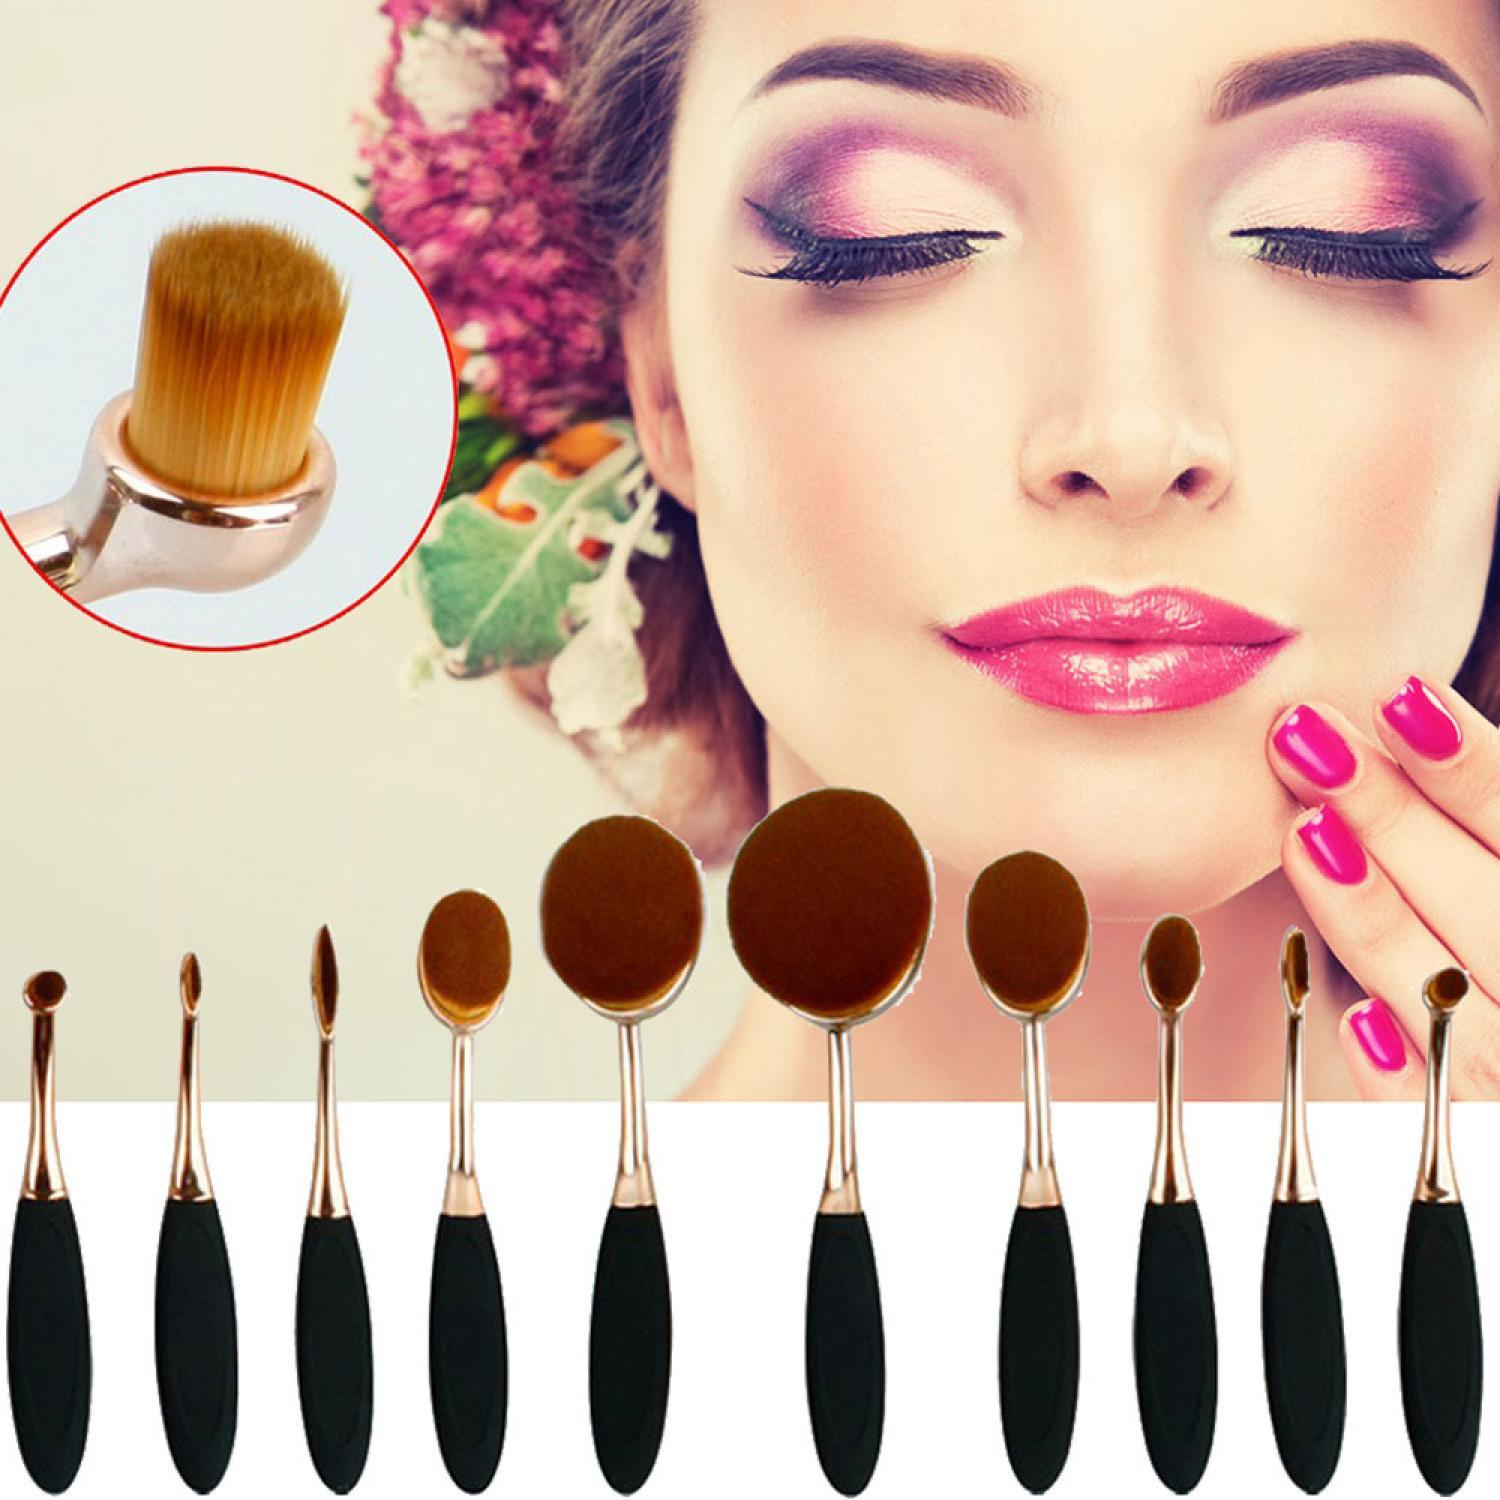 Kuas Kosmetik Make Up Oval Brush Wajah Tangkai Besi 10 PCS Asli Original Murah